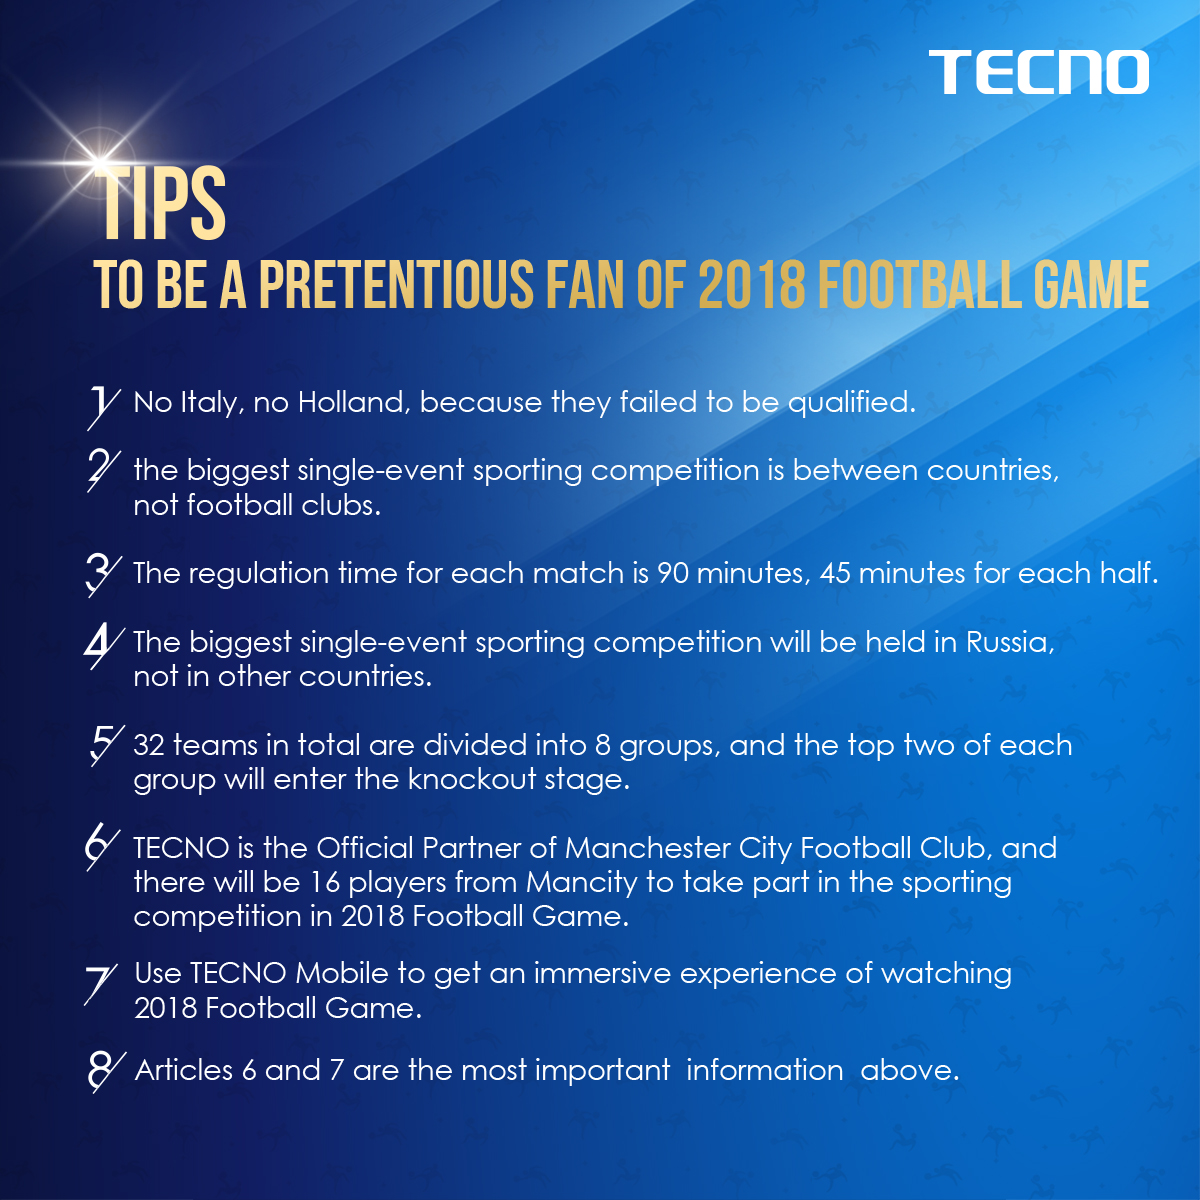 Click image for larger version  Name:Tips to be a Pretentious fan of 2018football game (1).jpg Views:1 Size:798.2 KB ID:16244